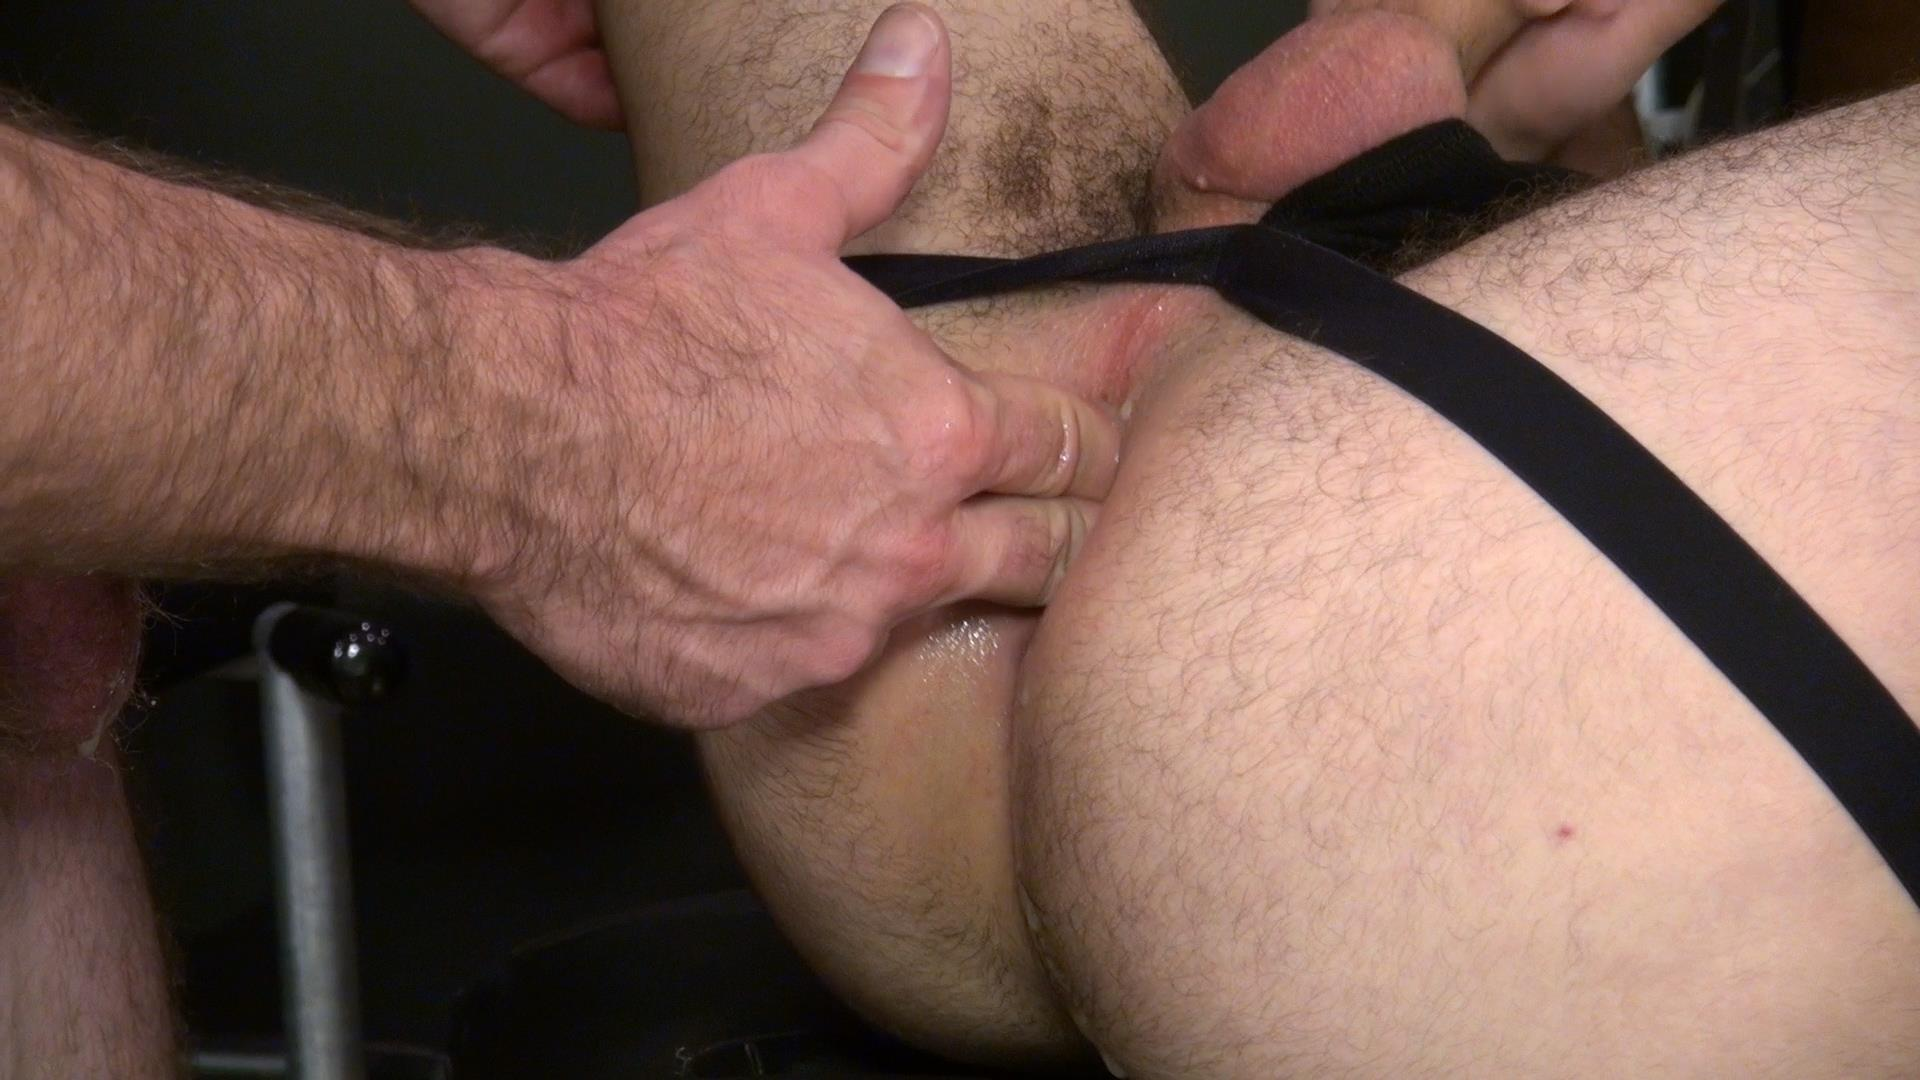 Raw and Rough Jake Wetmore and Dusty Williams and Kid Satyr Bareback Taking Raw Daddy Loads Cum Amateur Gay Porn 07